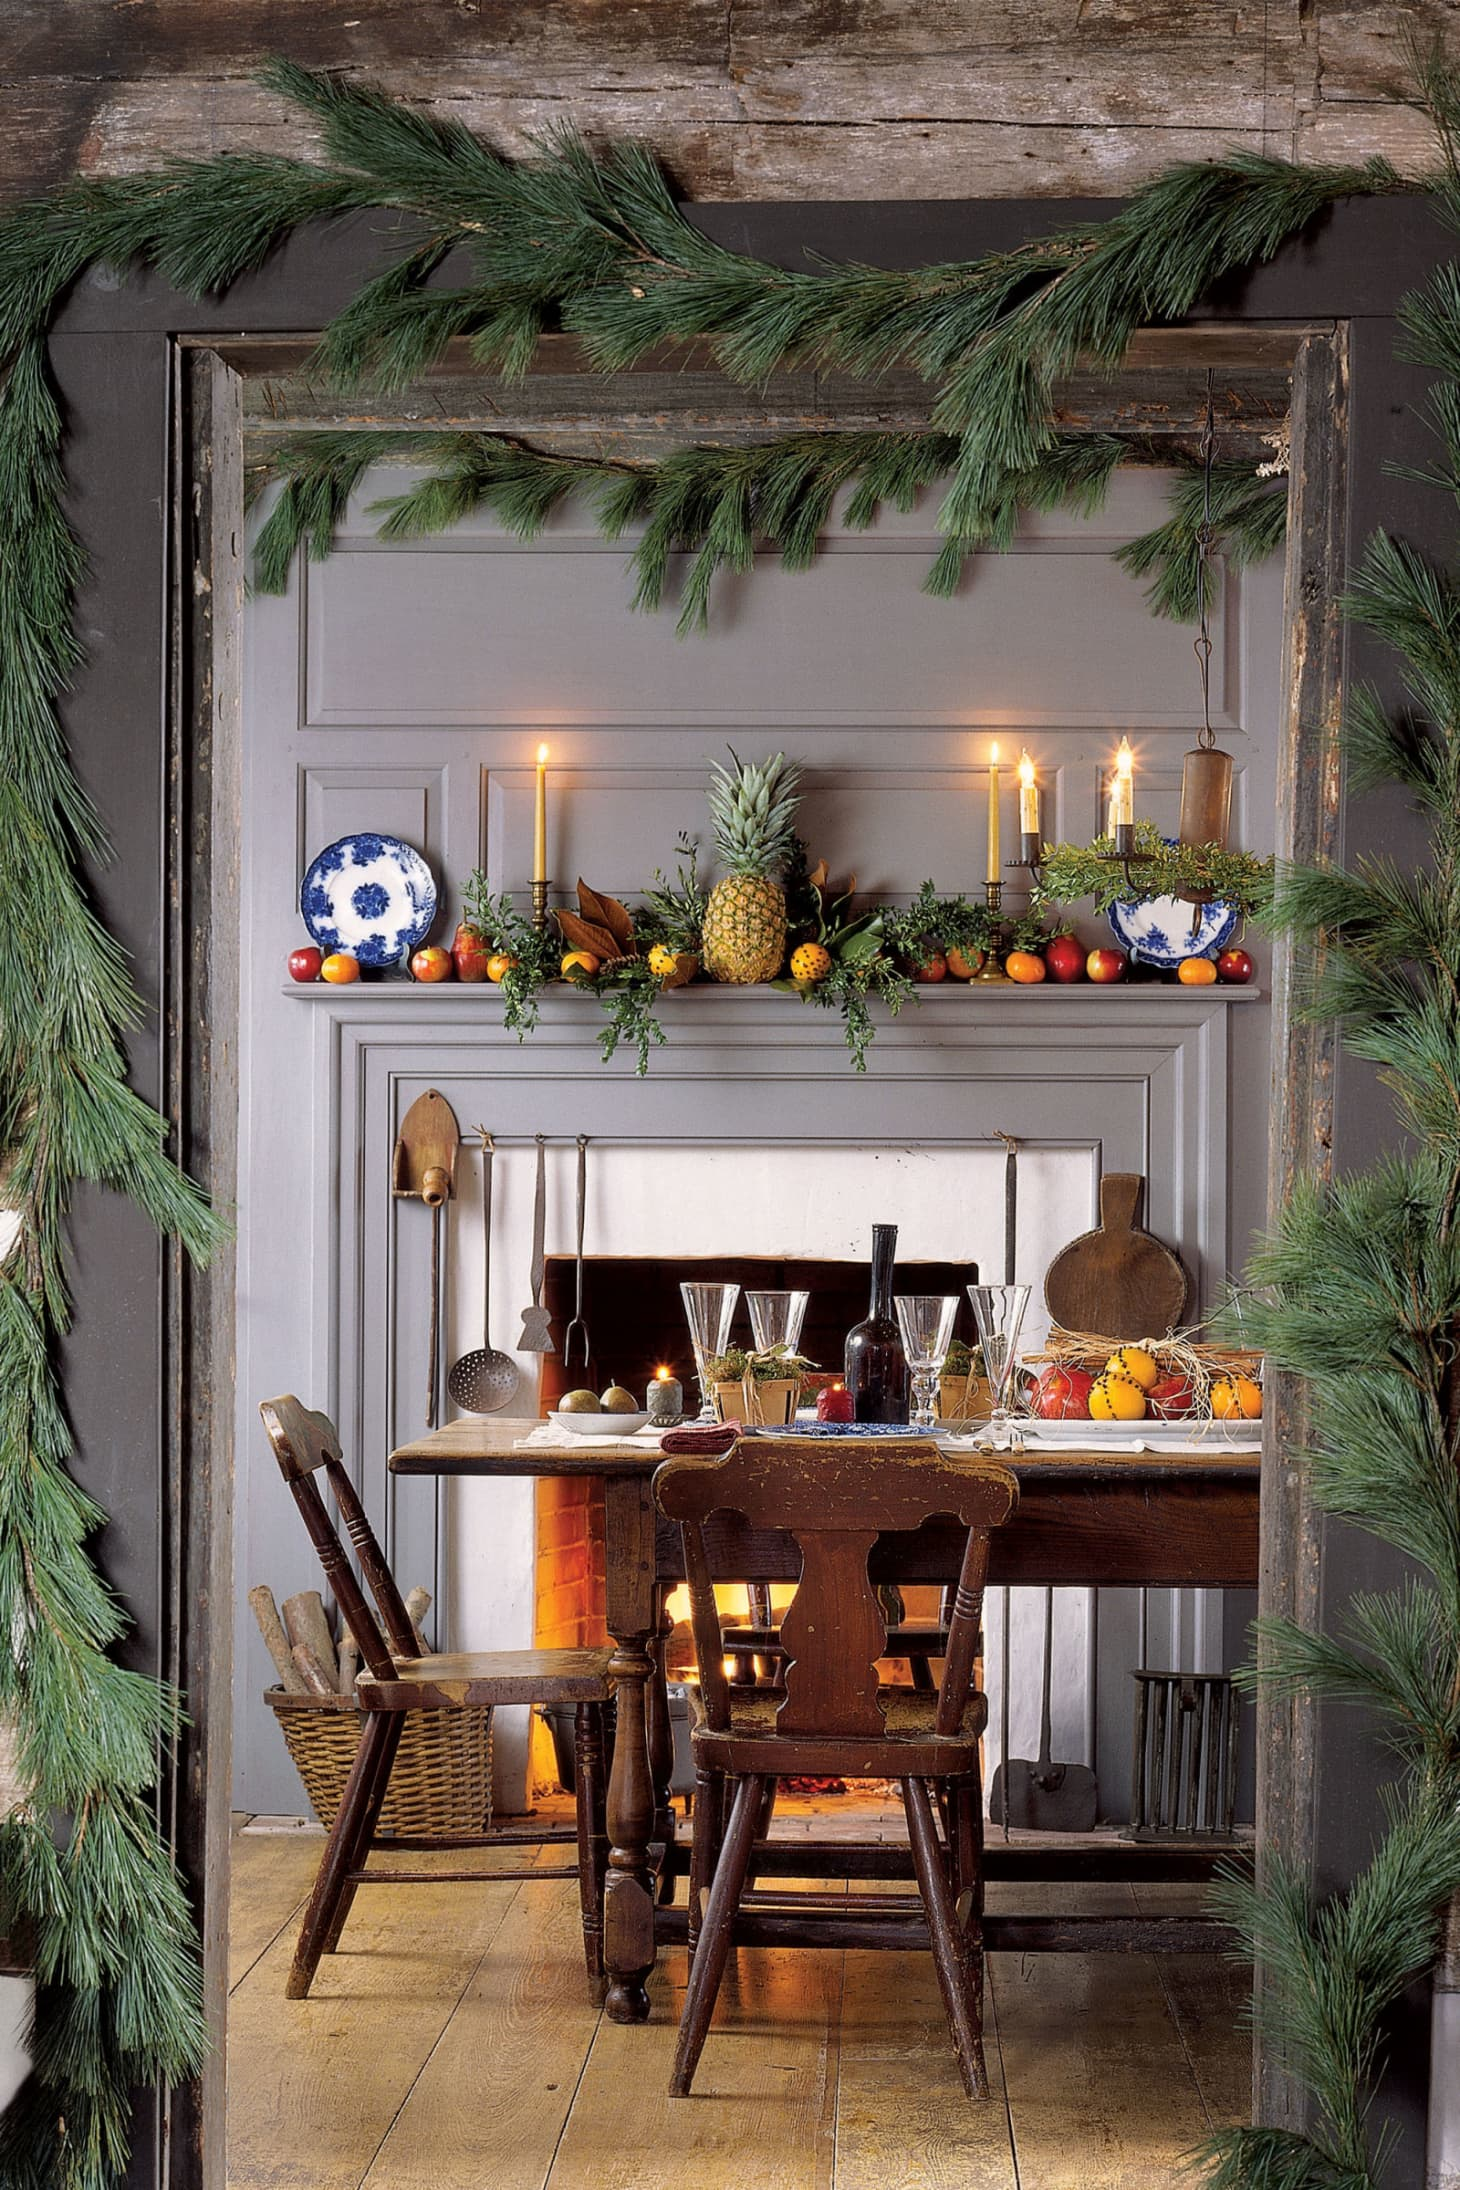 Elle Decoration Weihnachten Beautiful Decorating Ideas For A Traditional Christmas Apartment